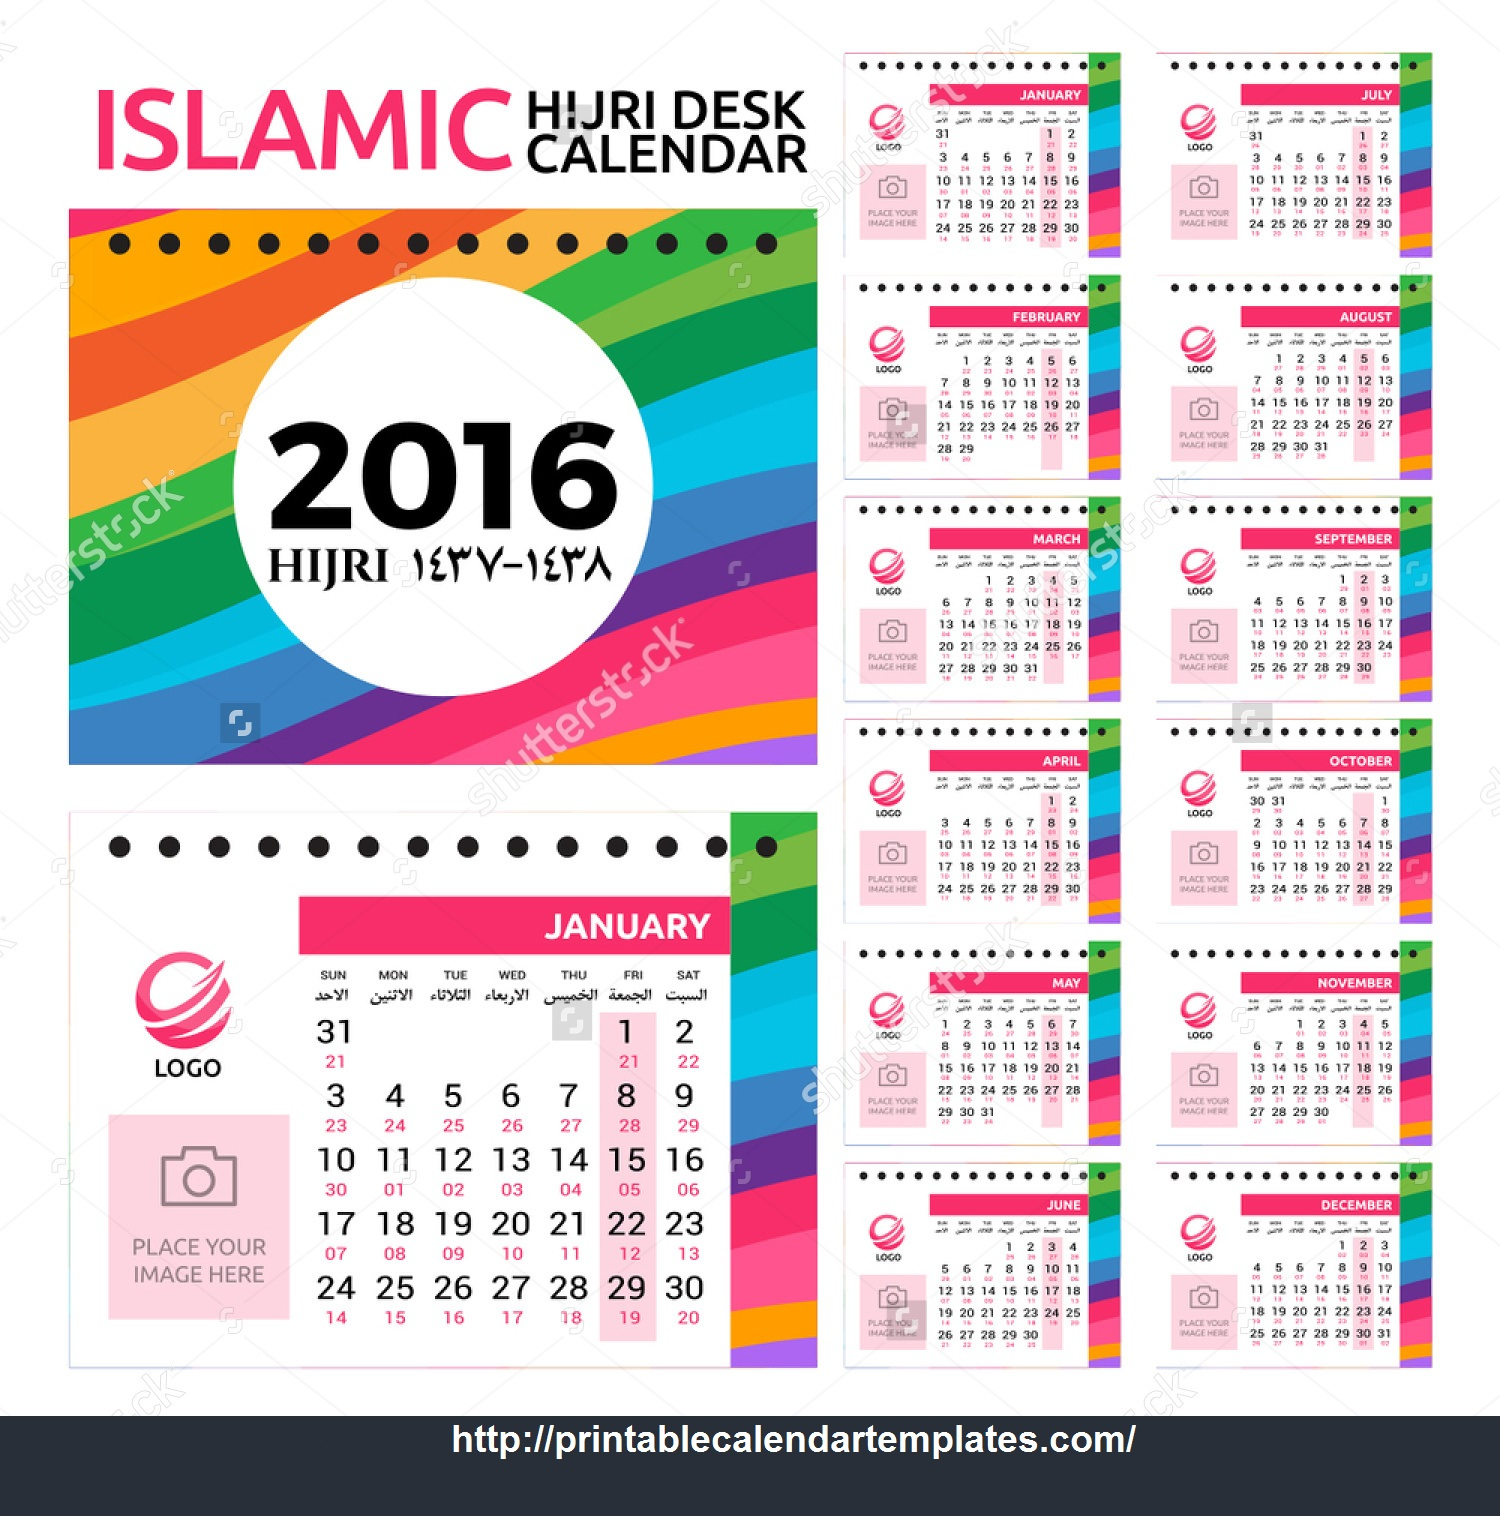 calendar hijri is an app for conversion from gregory date to hijri ...